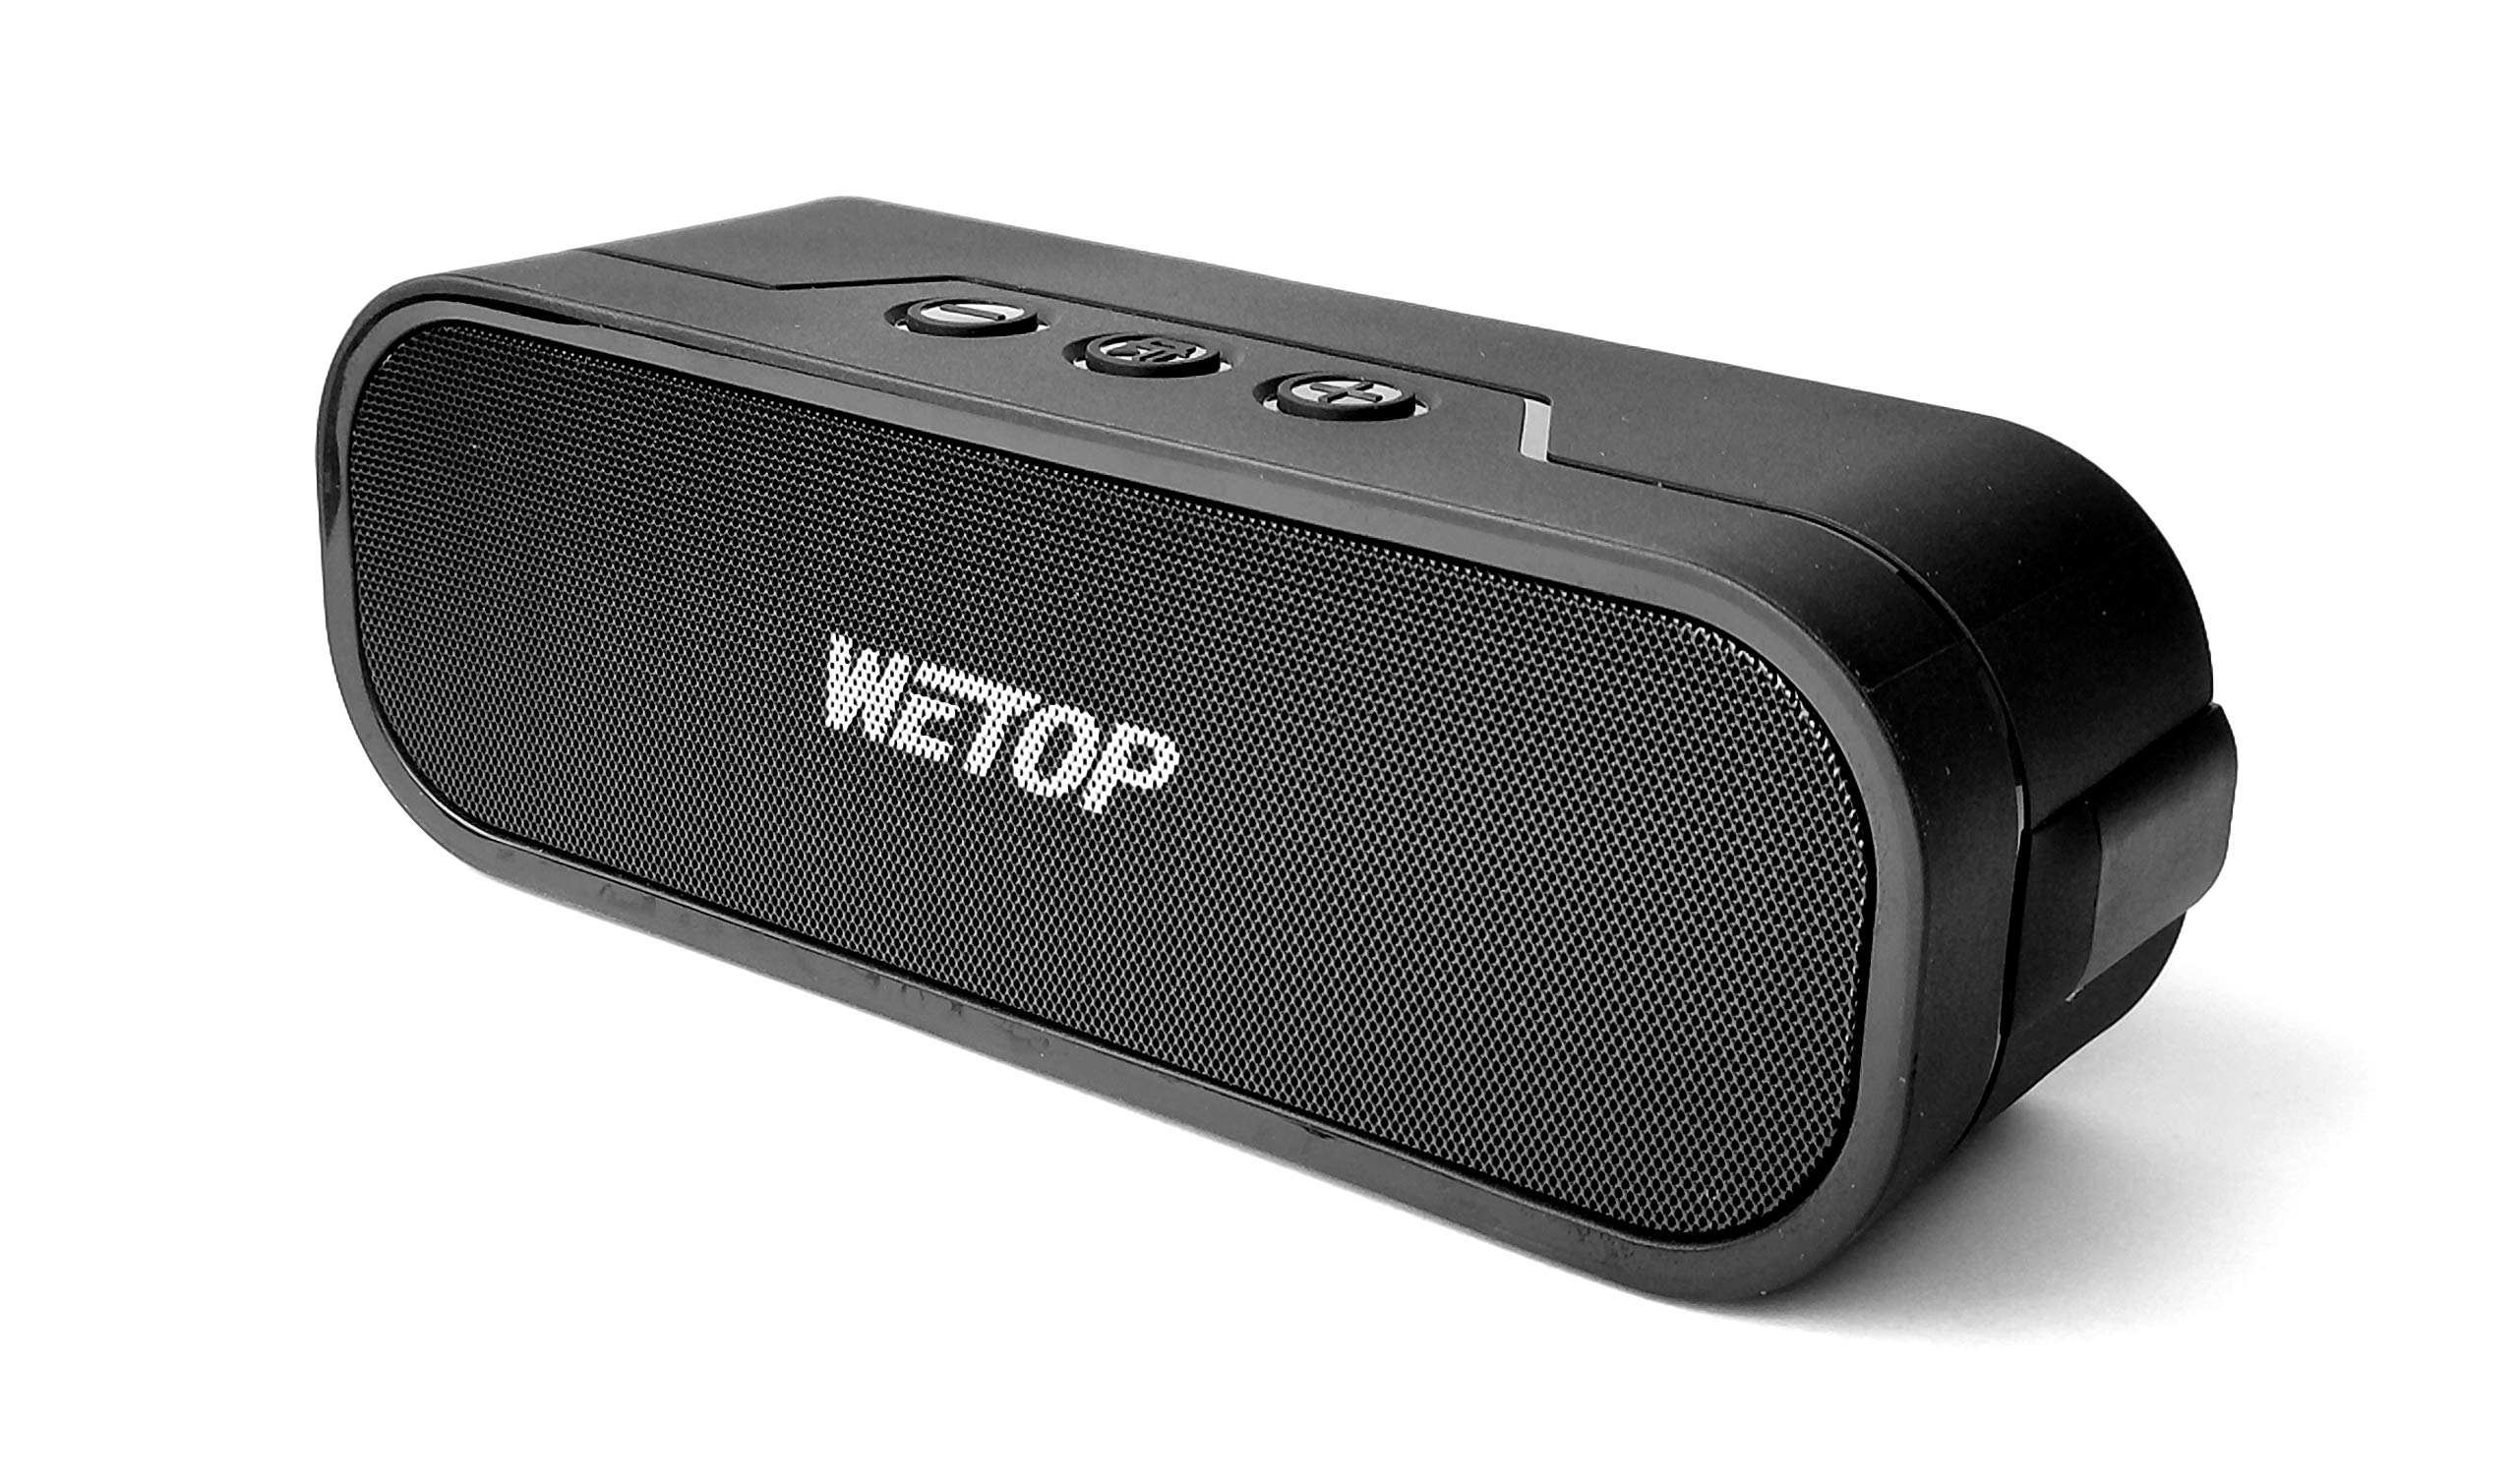 20 Watt Portable Bluetooth Speaker. H.D Sound Quality, IPX 5